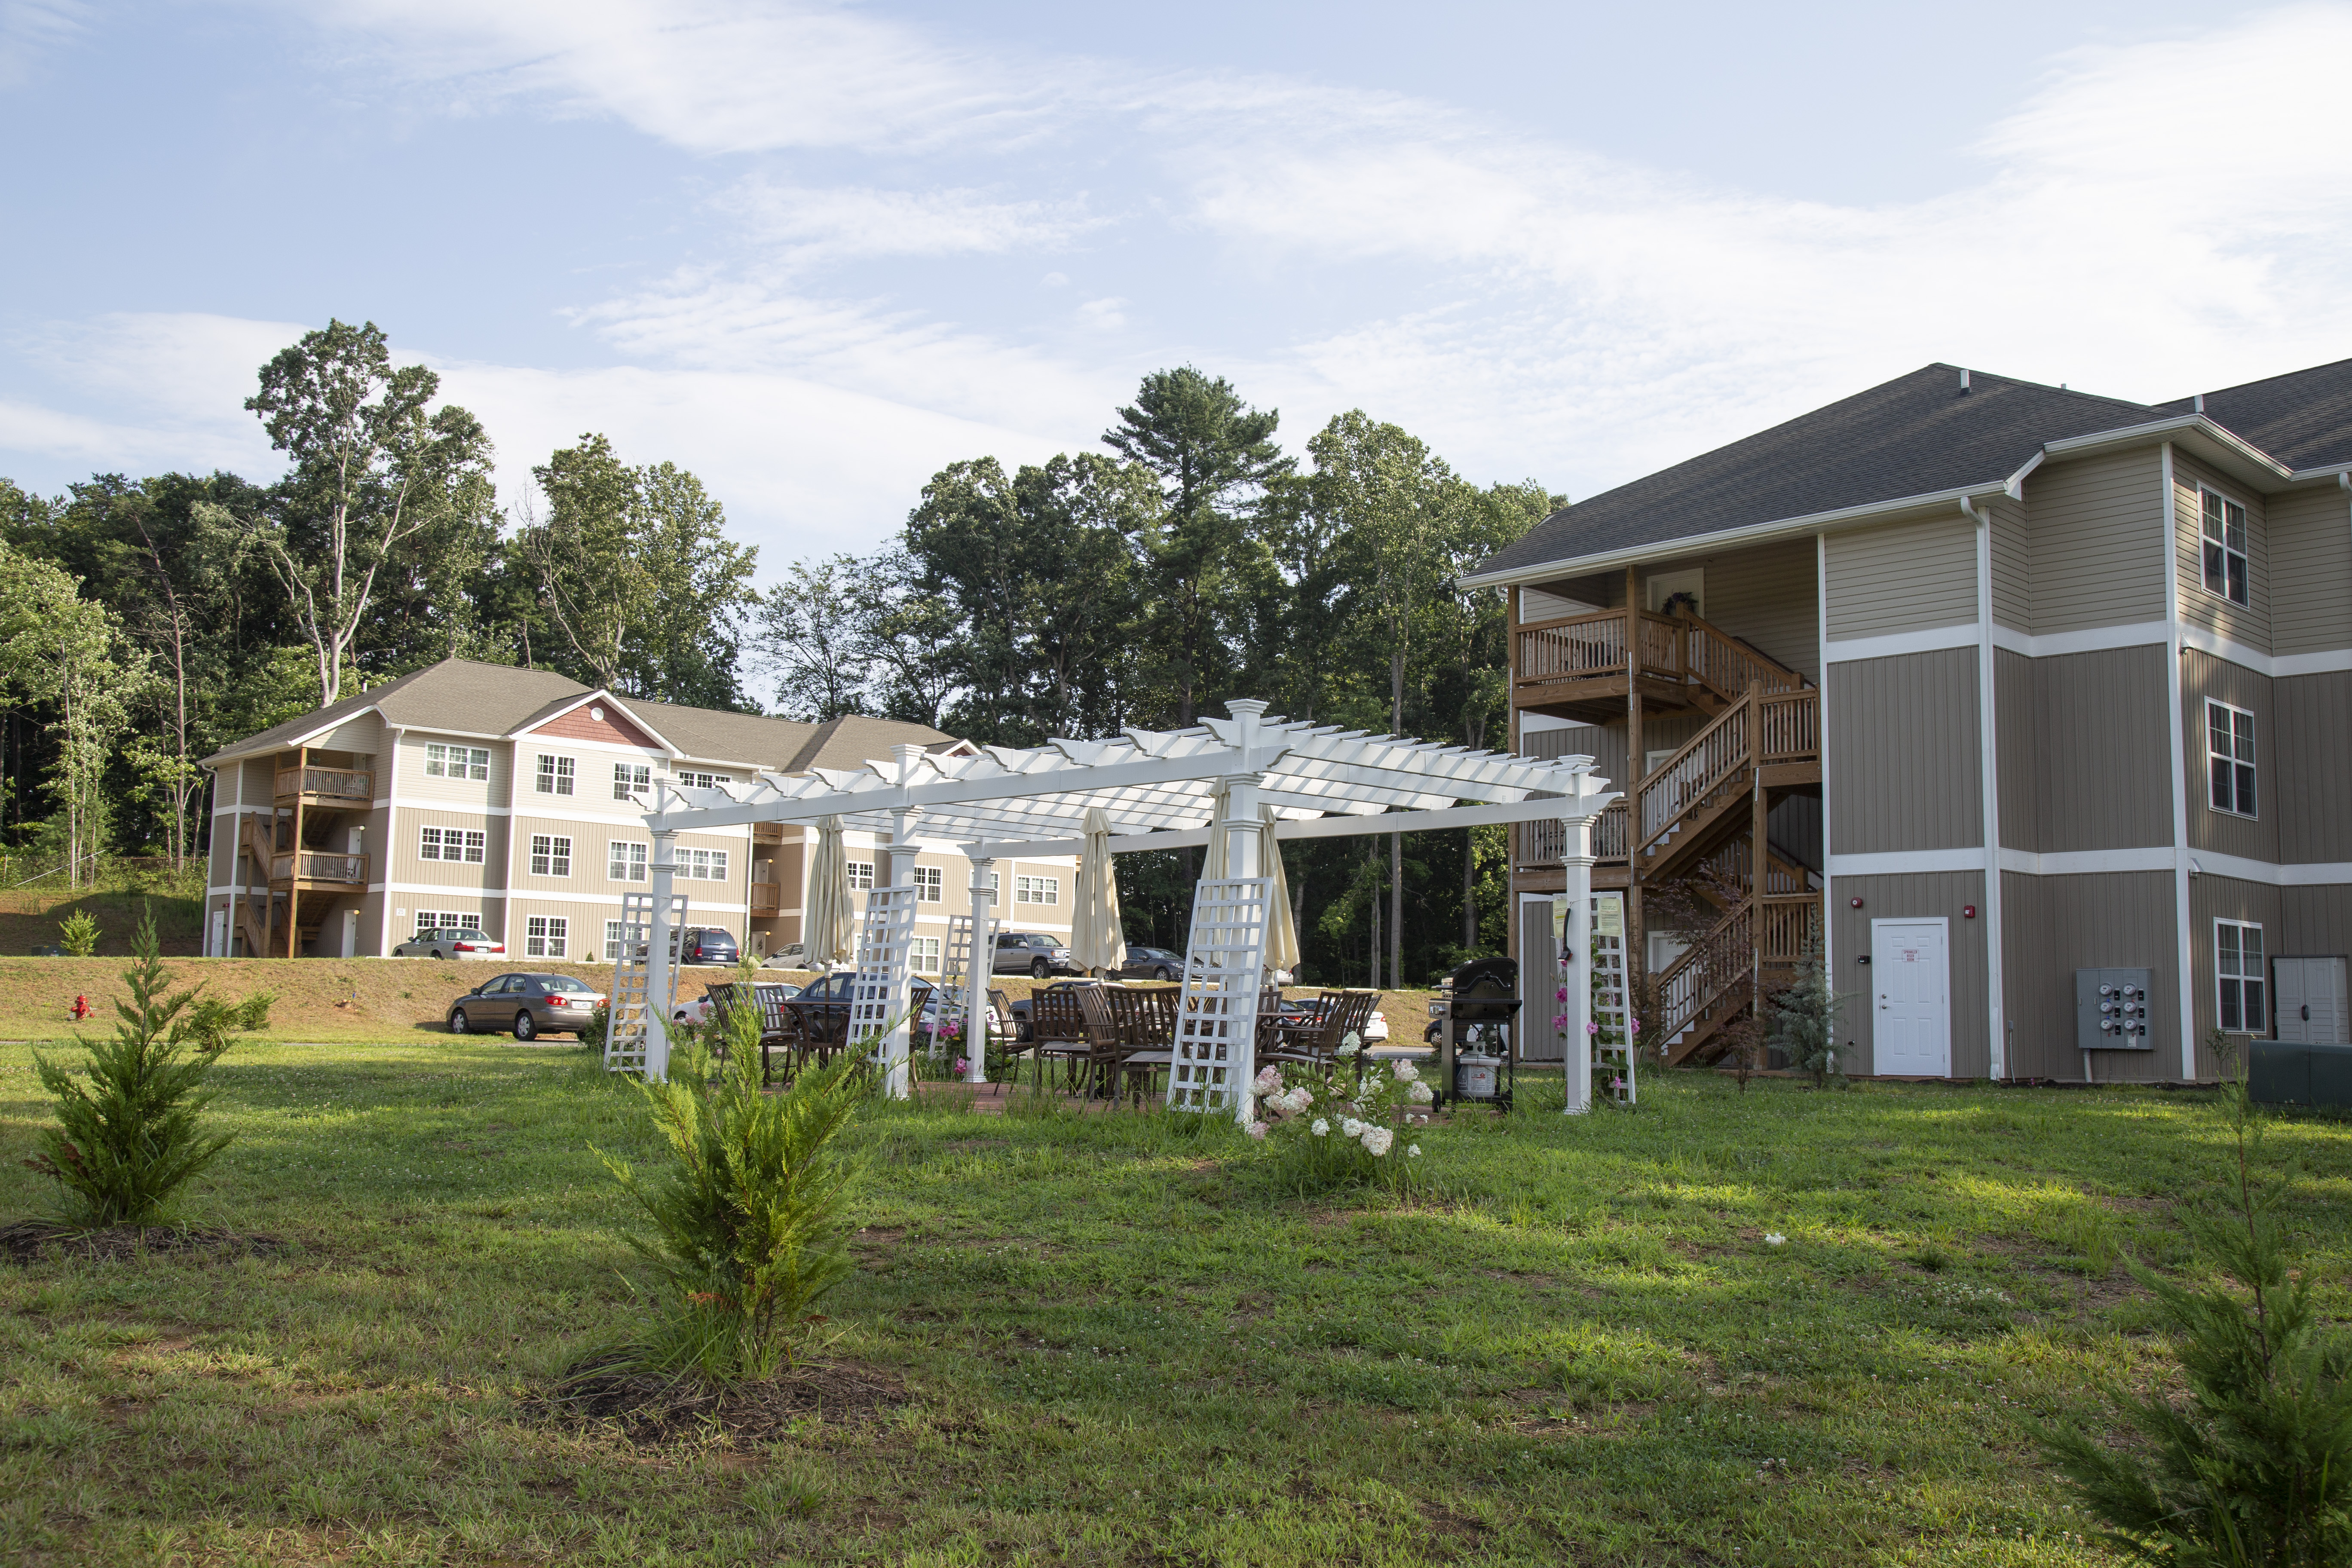 Buncombe County Schools built a housing complex for teachers to help contend with rising housings on the thriving region around Asheville, North Carolina. (Photo: Buncombe County Schools Communications Department)